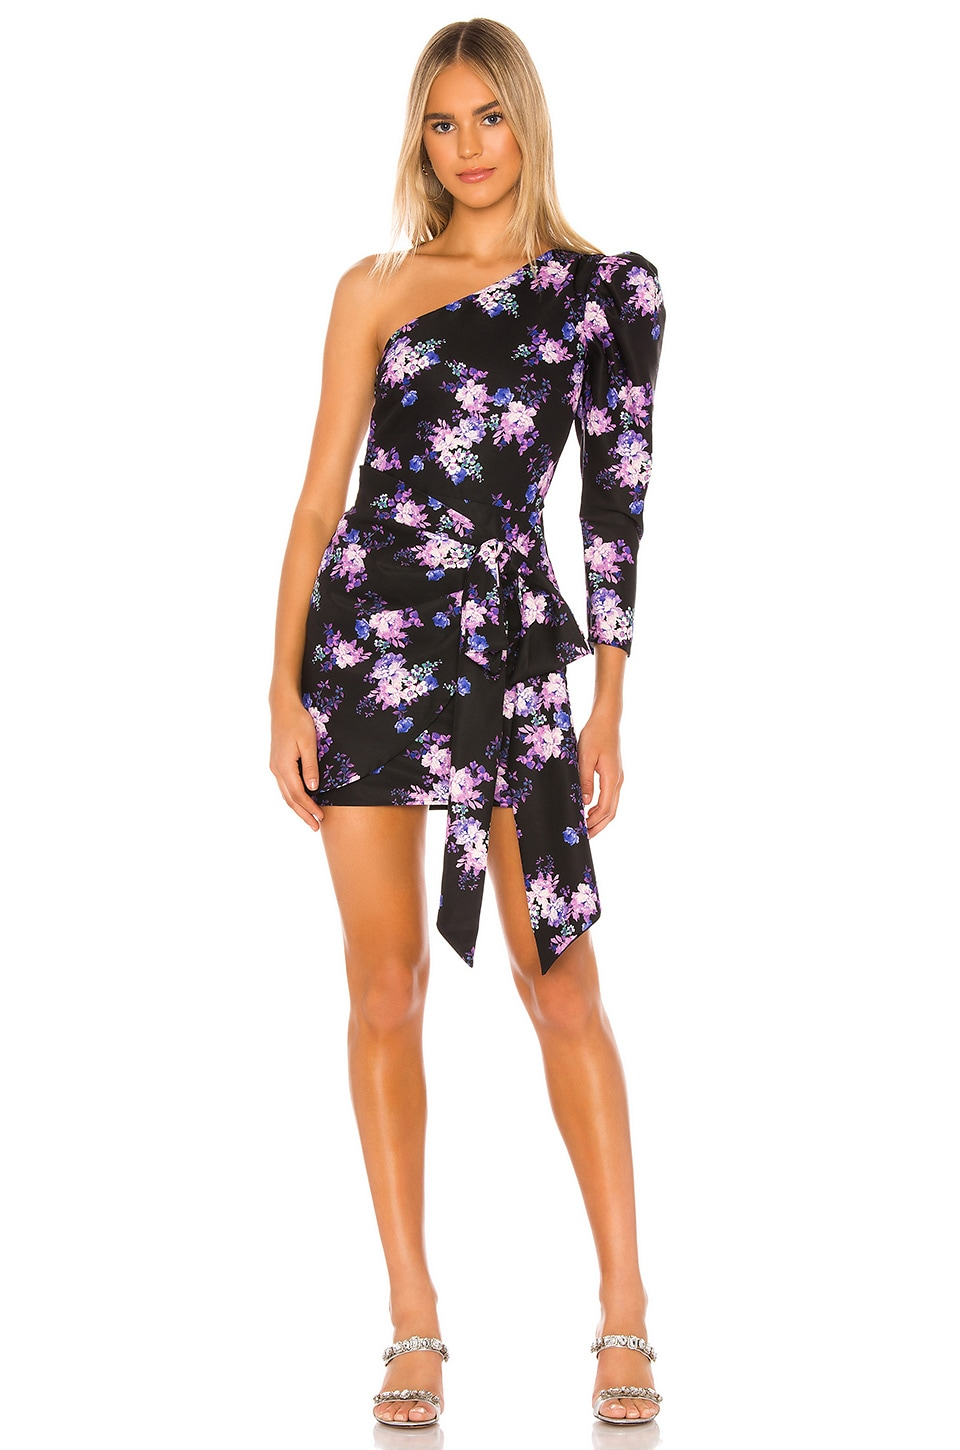 Lovers + Friends Sullie Mini Dress in Royal Floral